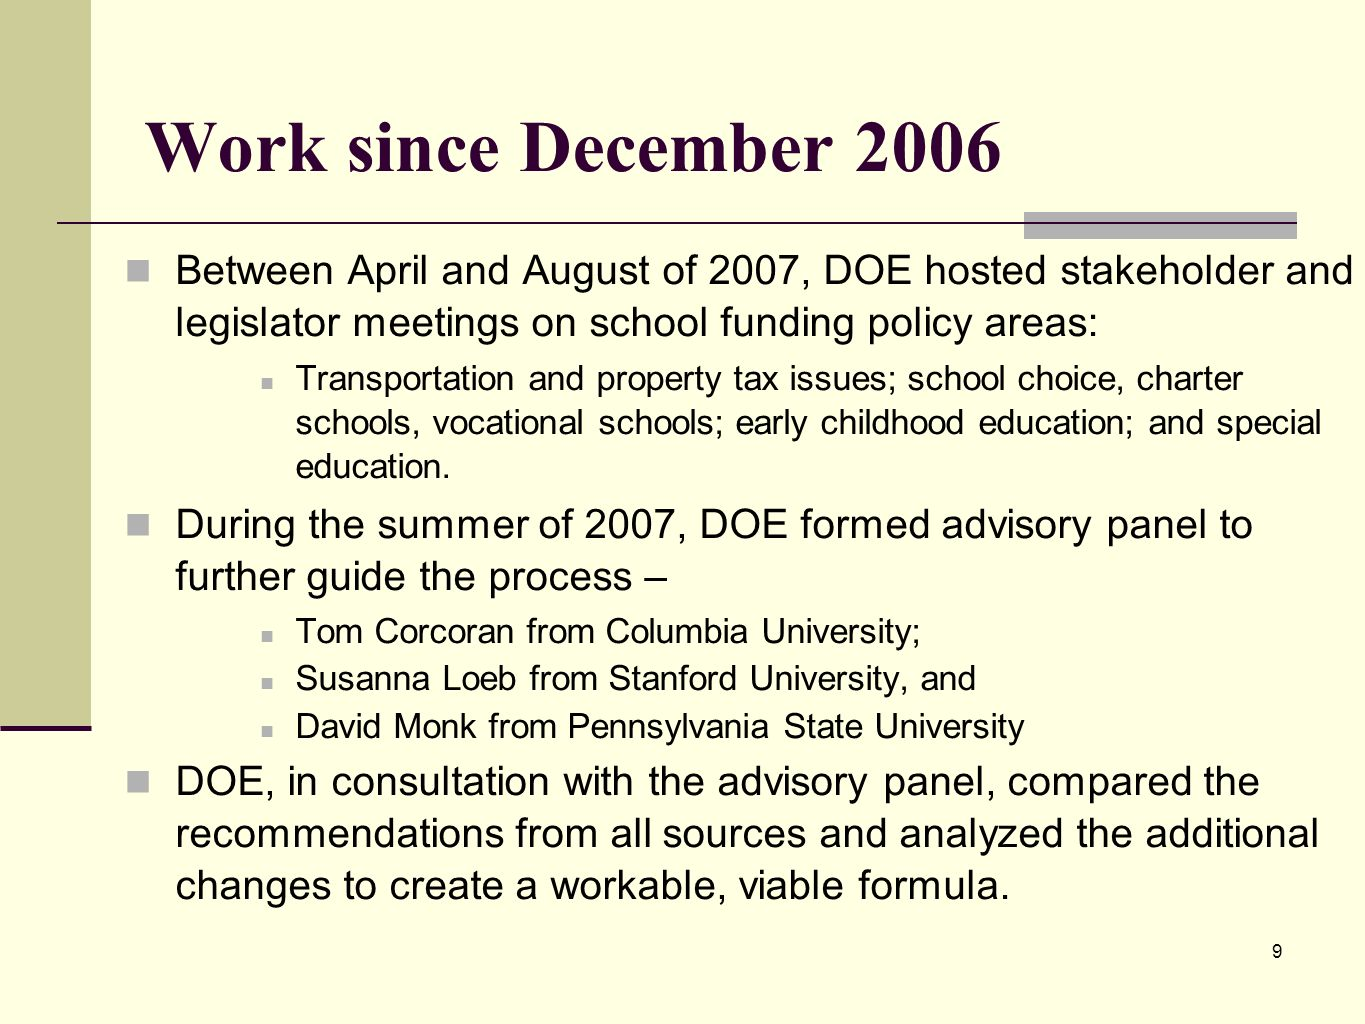 9 Work since December 2006 Between April and August of 2007, DOE hosted stakeholder and legislator meetings on school funding policy areas: Transportation and property tax issues; school choice, charter schools, vocational schools; early childhood education; and special education.